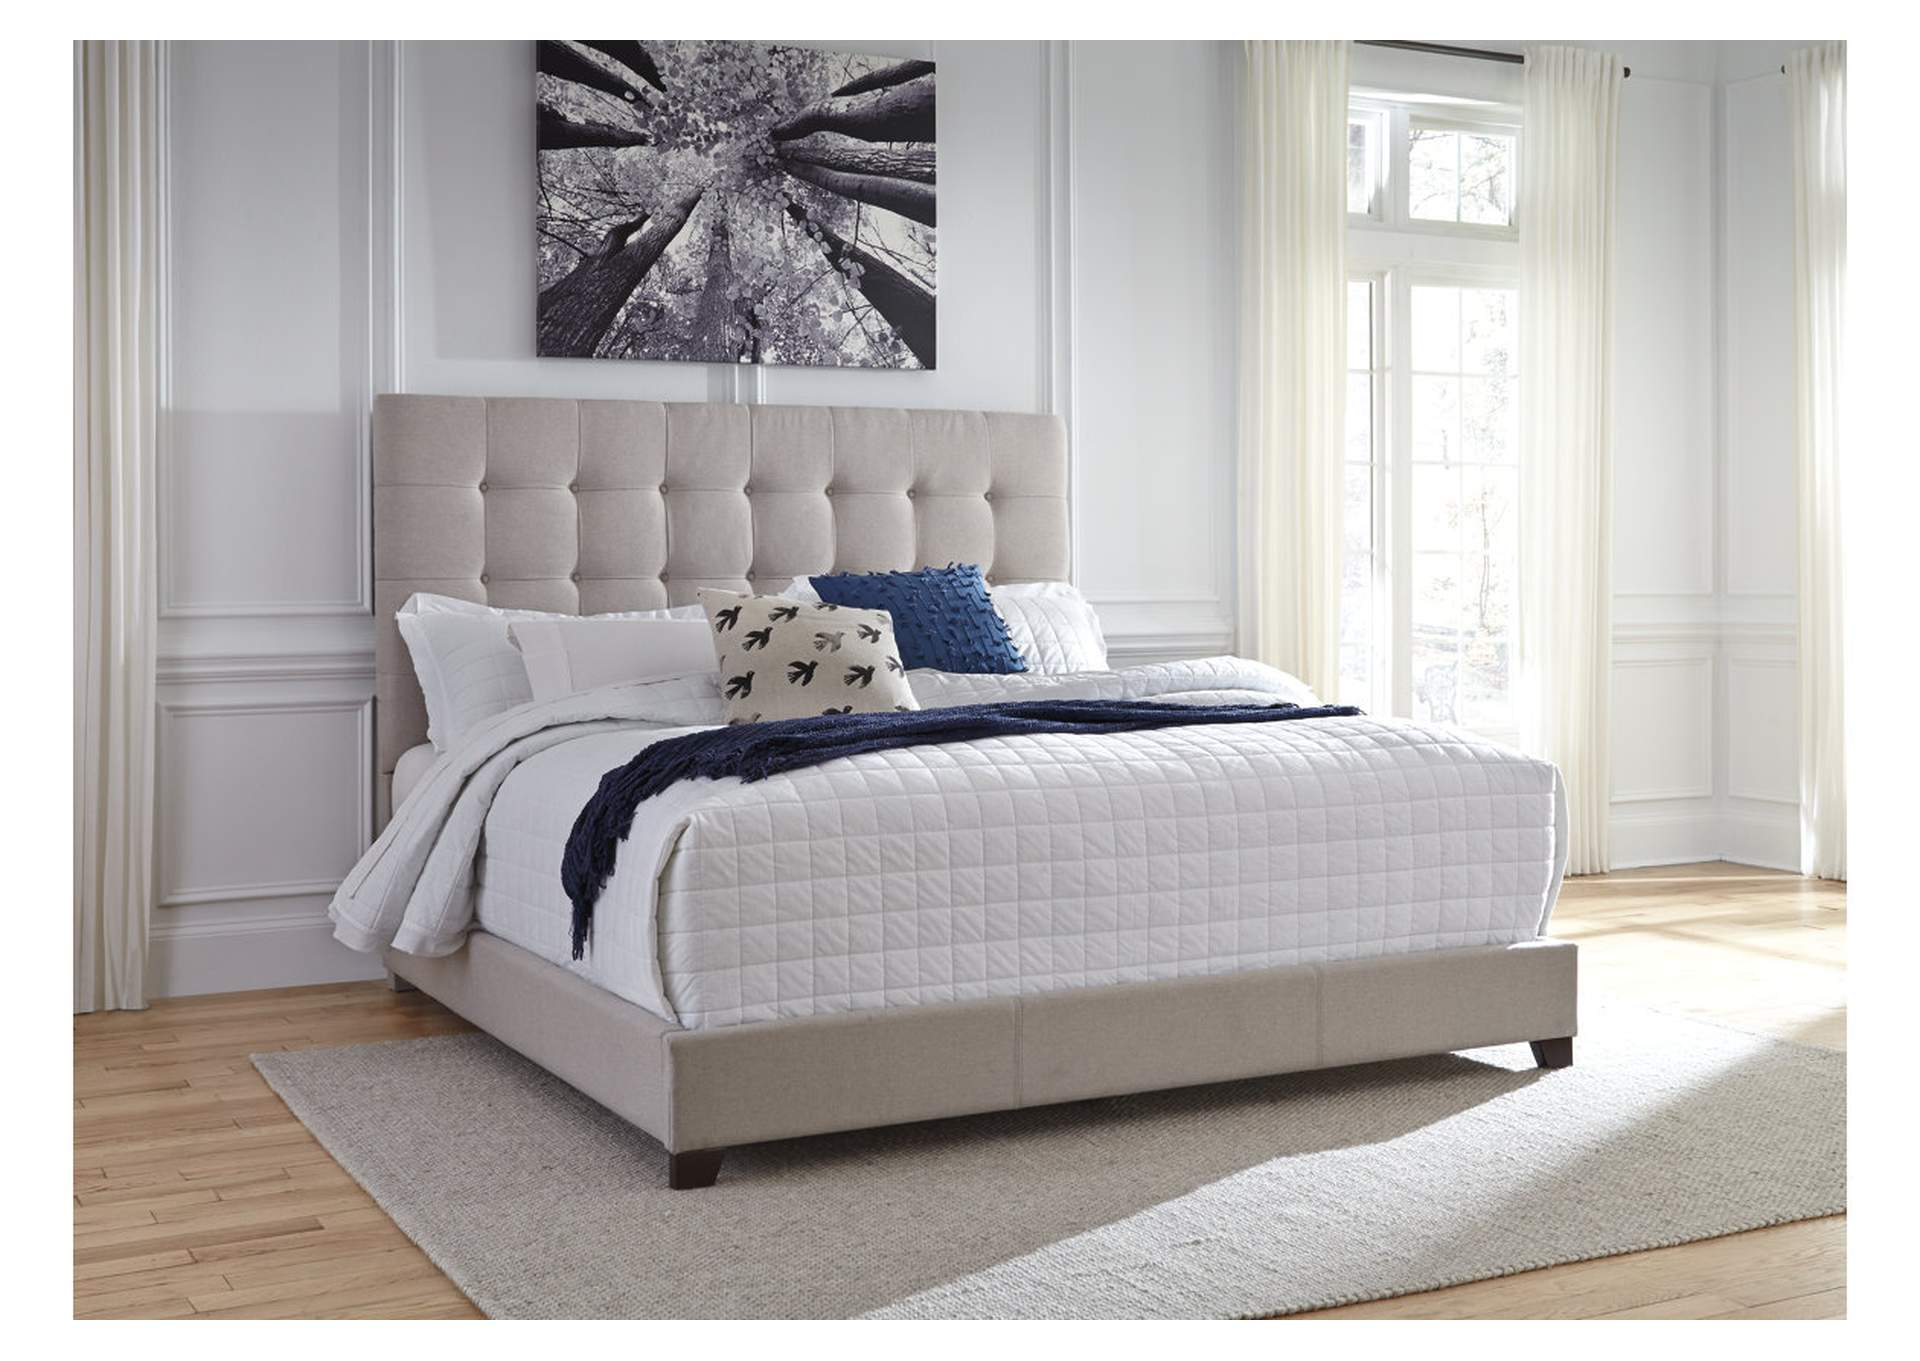 Ivan Smith Beige King Upholstered Bed